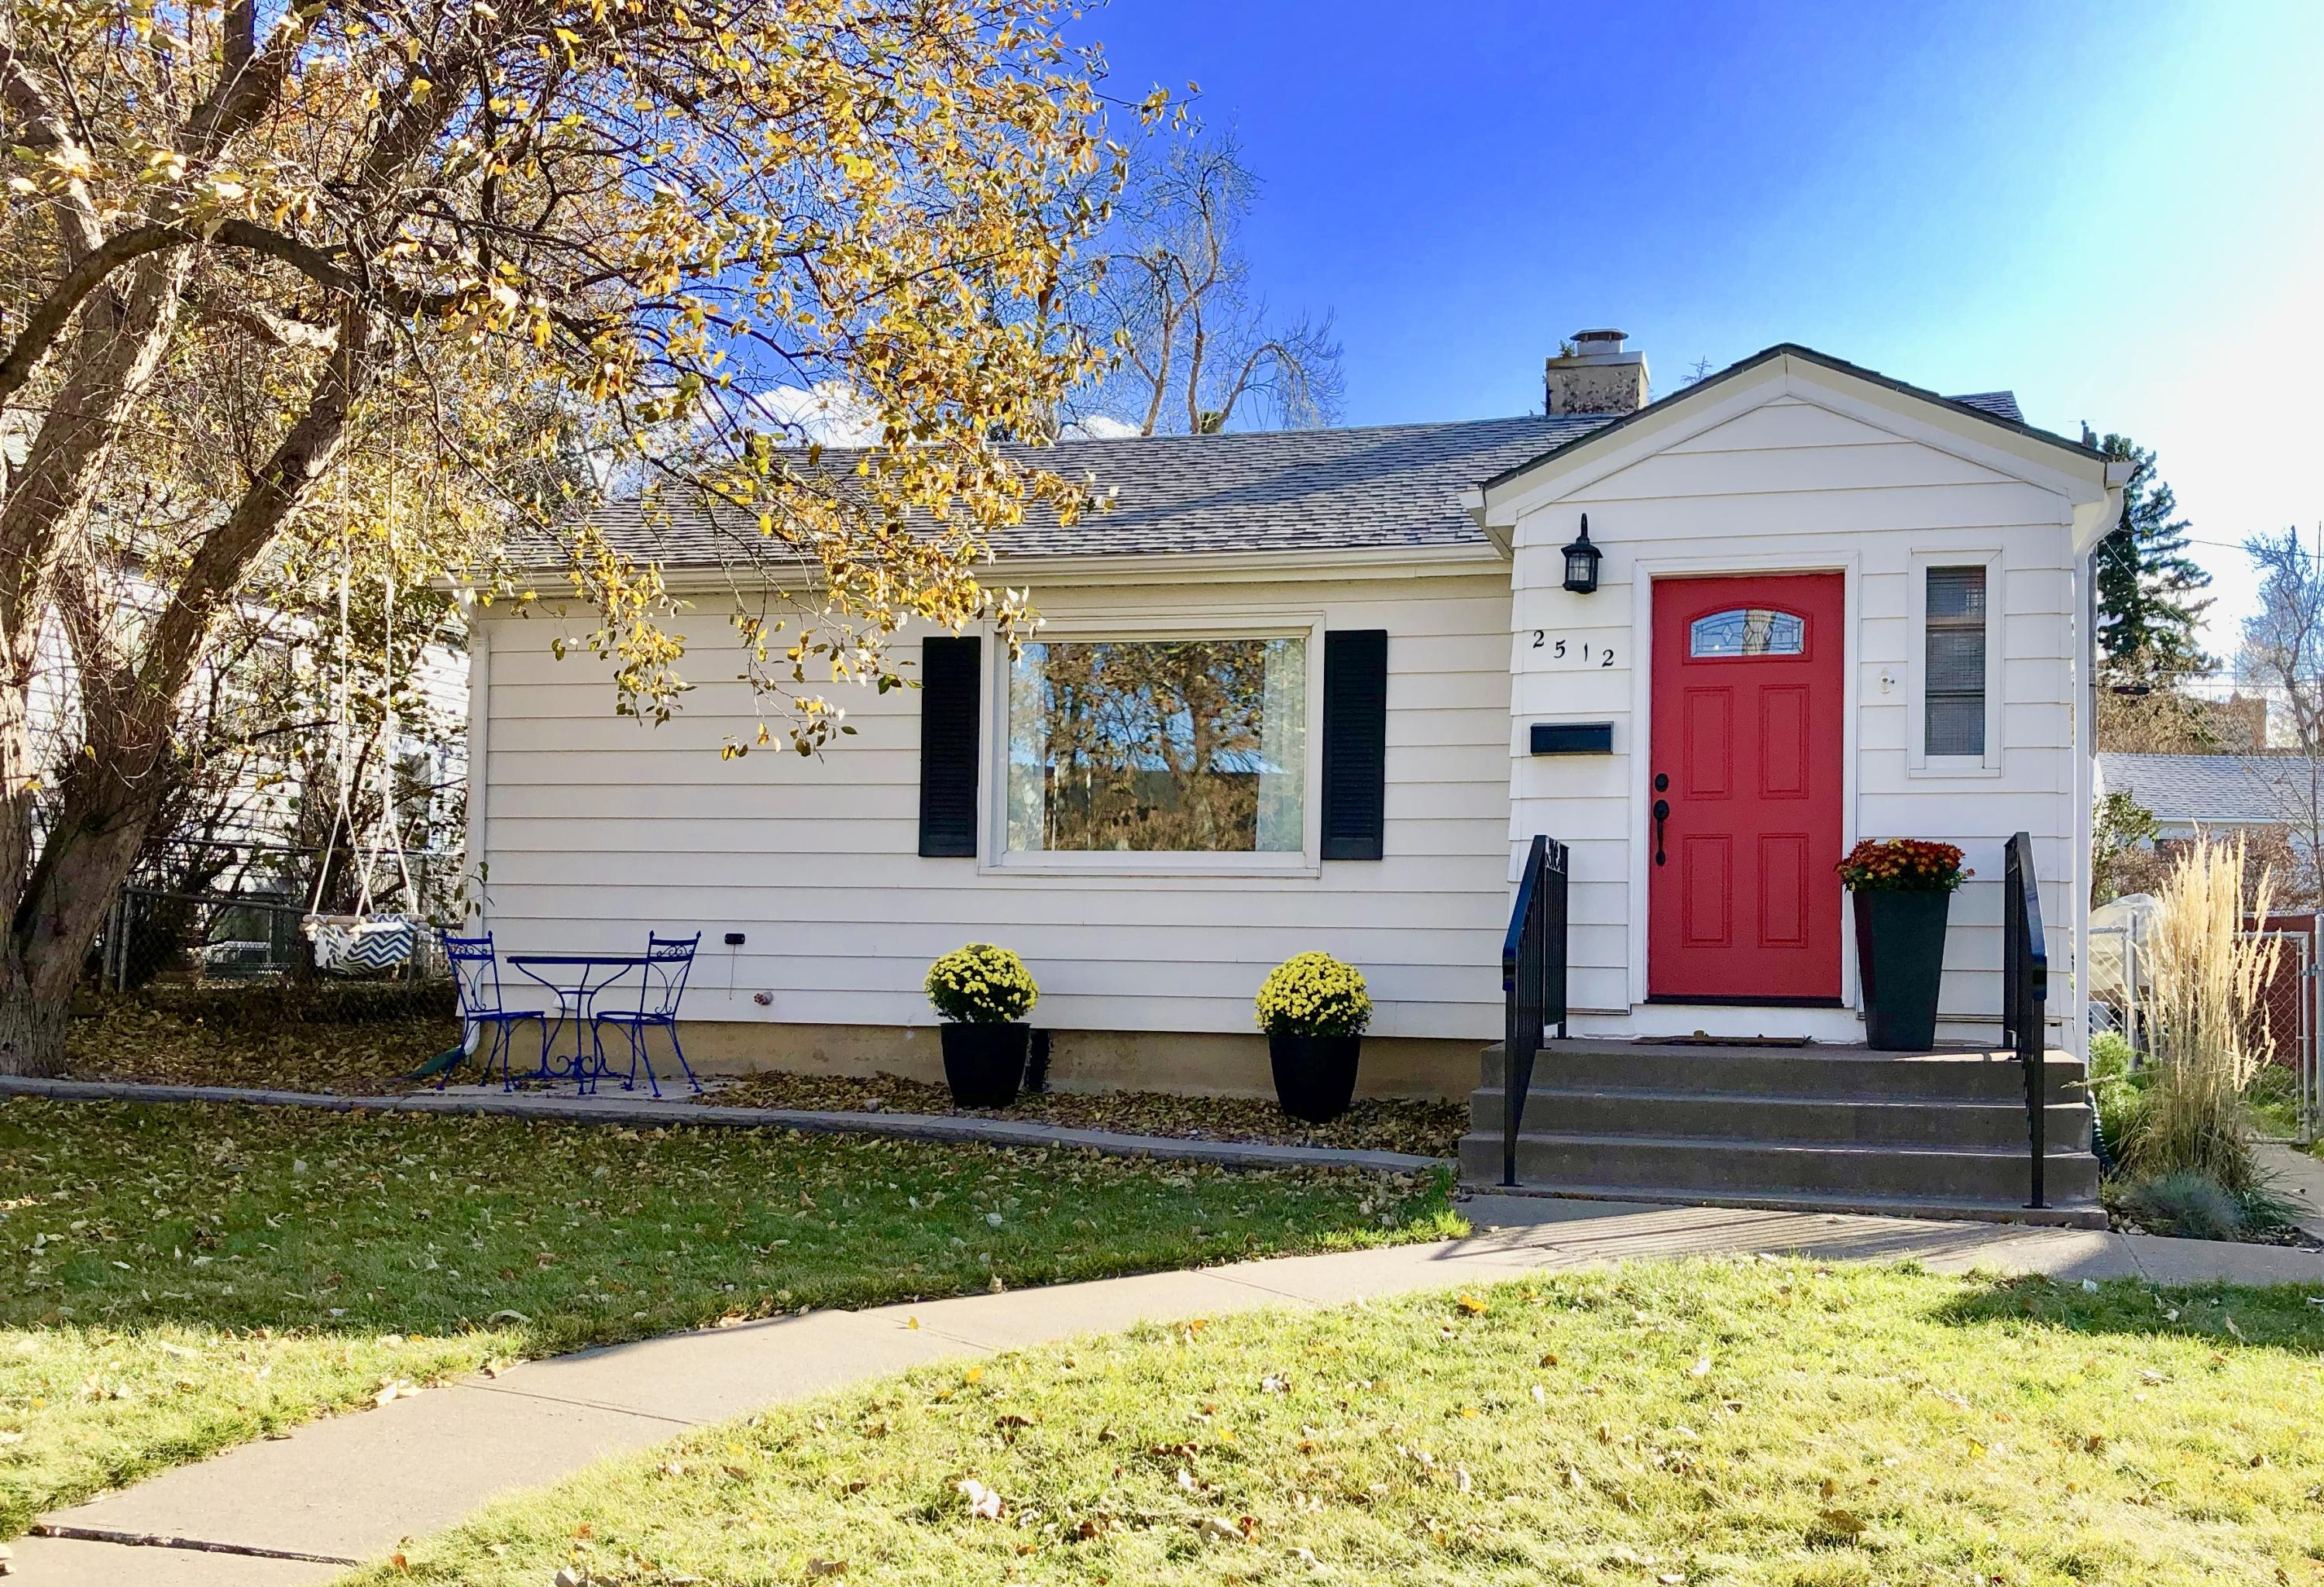 4th Avenue North SWEET Home. This Tastefully Updated, 3 Bedroom, 2 Bathroom Home is a WINNER!  2 Car Heated Garage, Pergola, Deck, Pavers, Fire Pit and a Fenced Back Yard.  Get your Running Shoes on, as this WILL NOT LAST!  Please view the Virtual Tour and Call Jean Clary 406.868.3961 or Your Real Estate Professional.